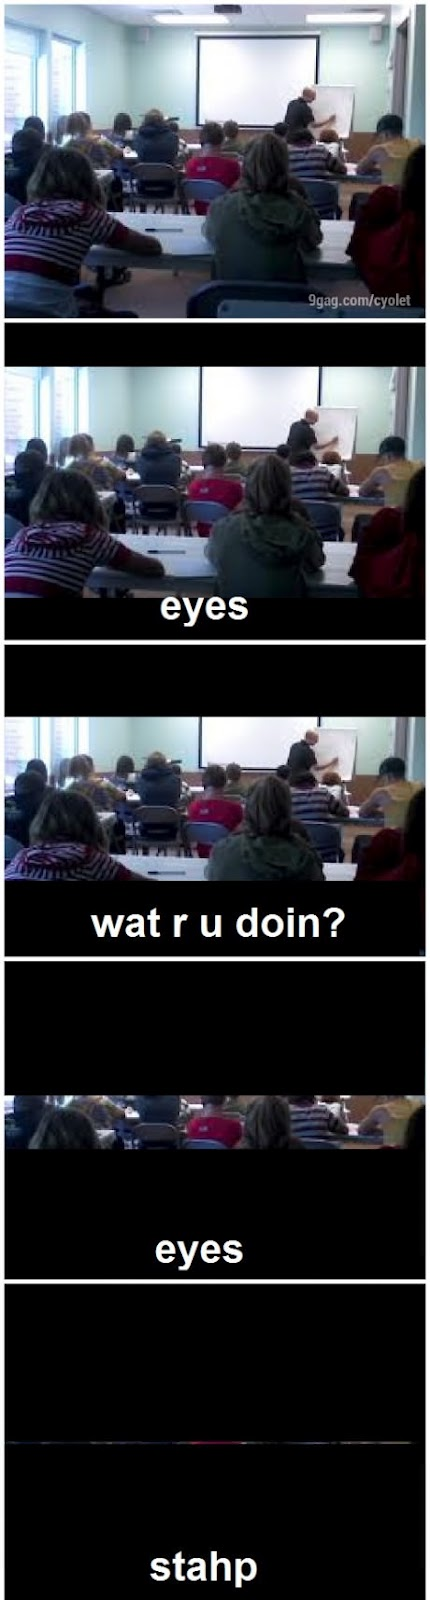 funny comic picture eyes at class